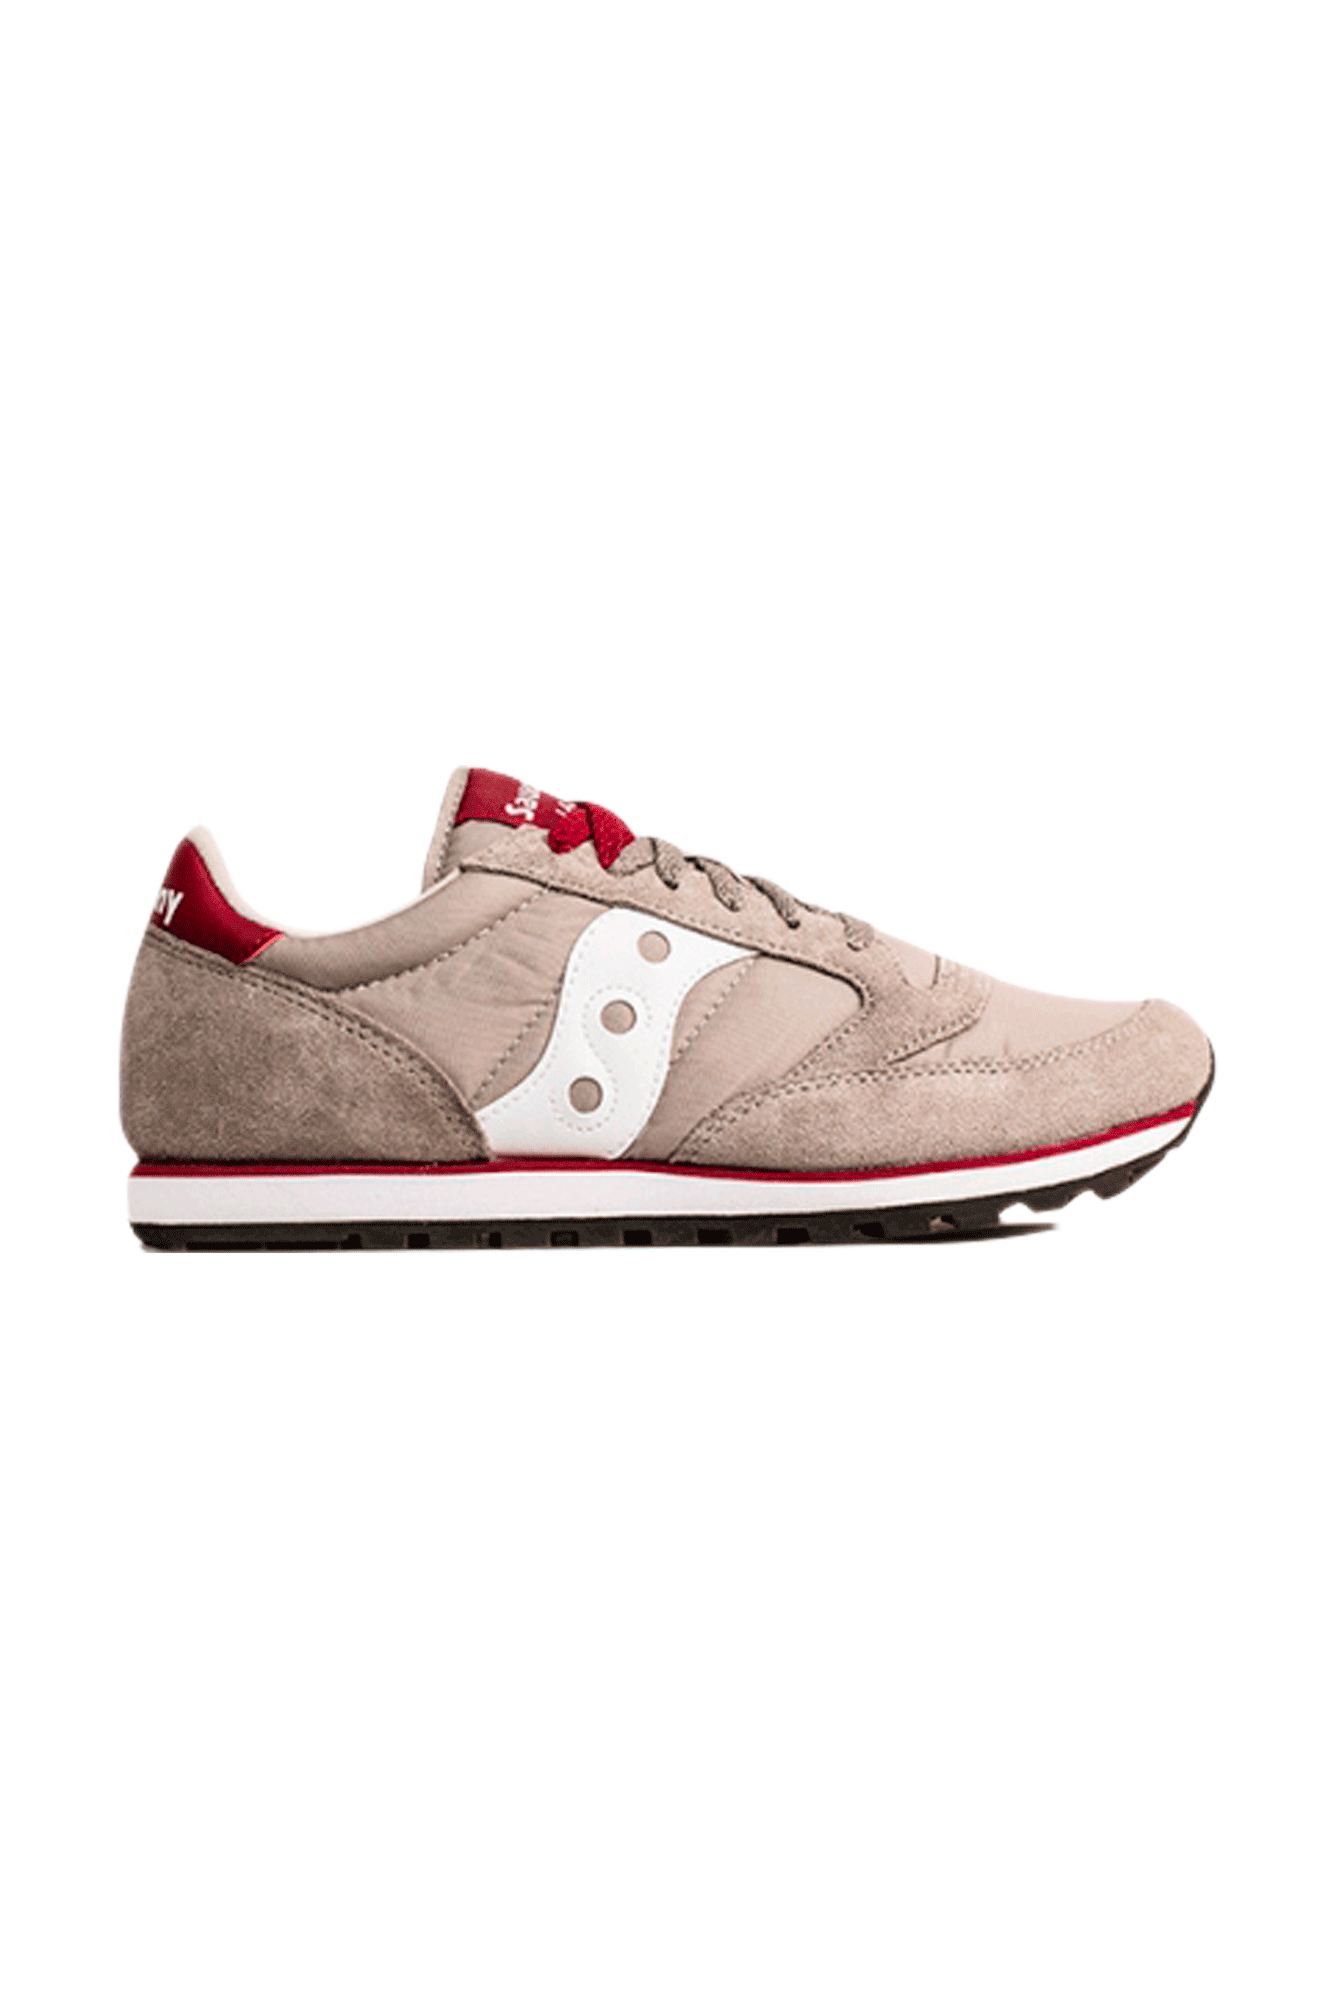 Saucony Sneakers Jazz Low Pro Grey 2866179#000#C0009#8,5 - One Block Down